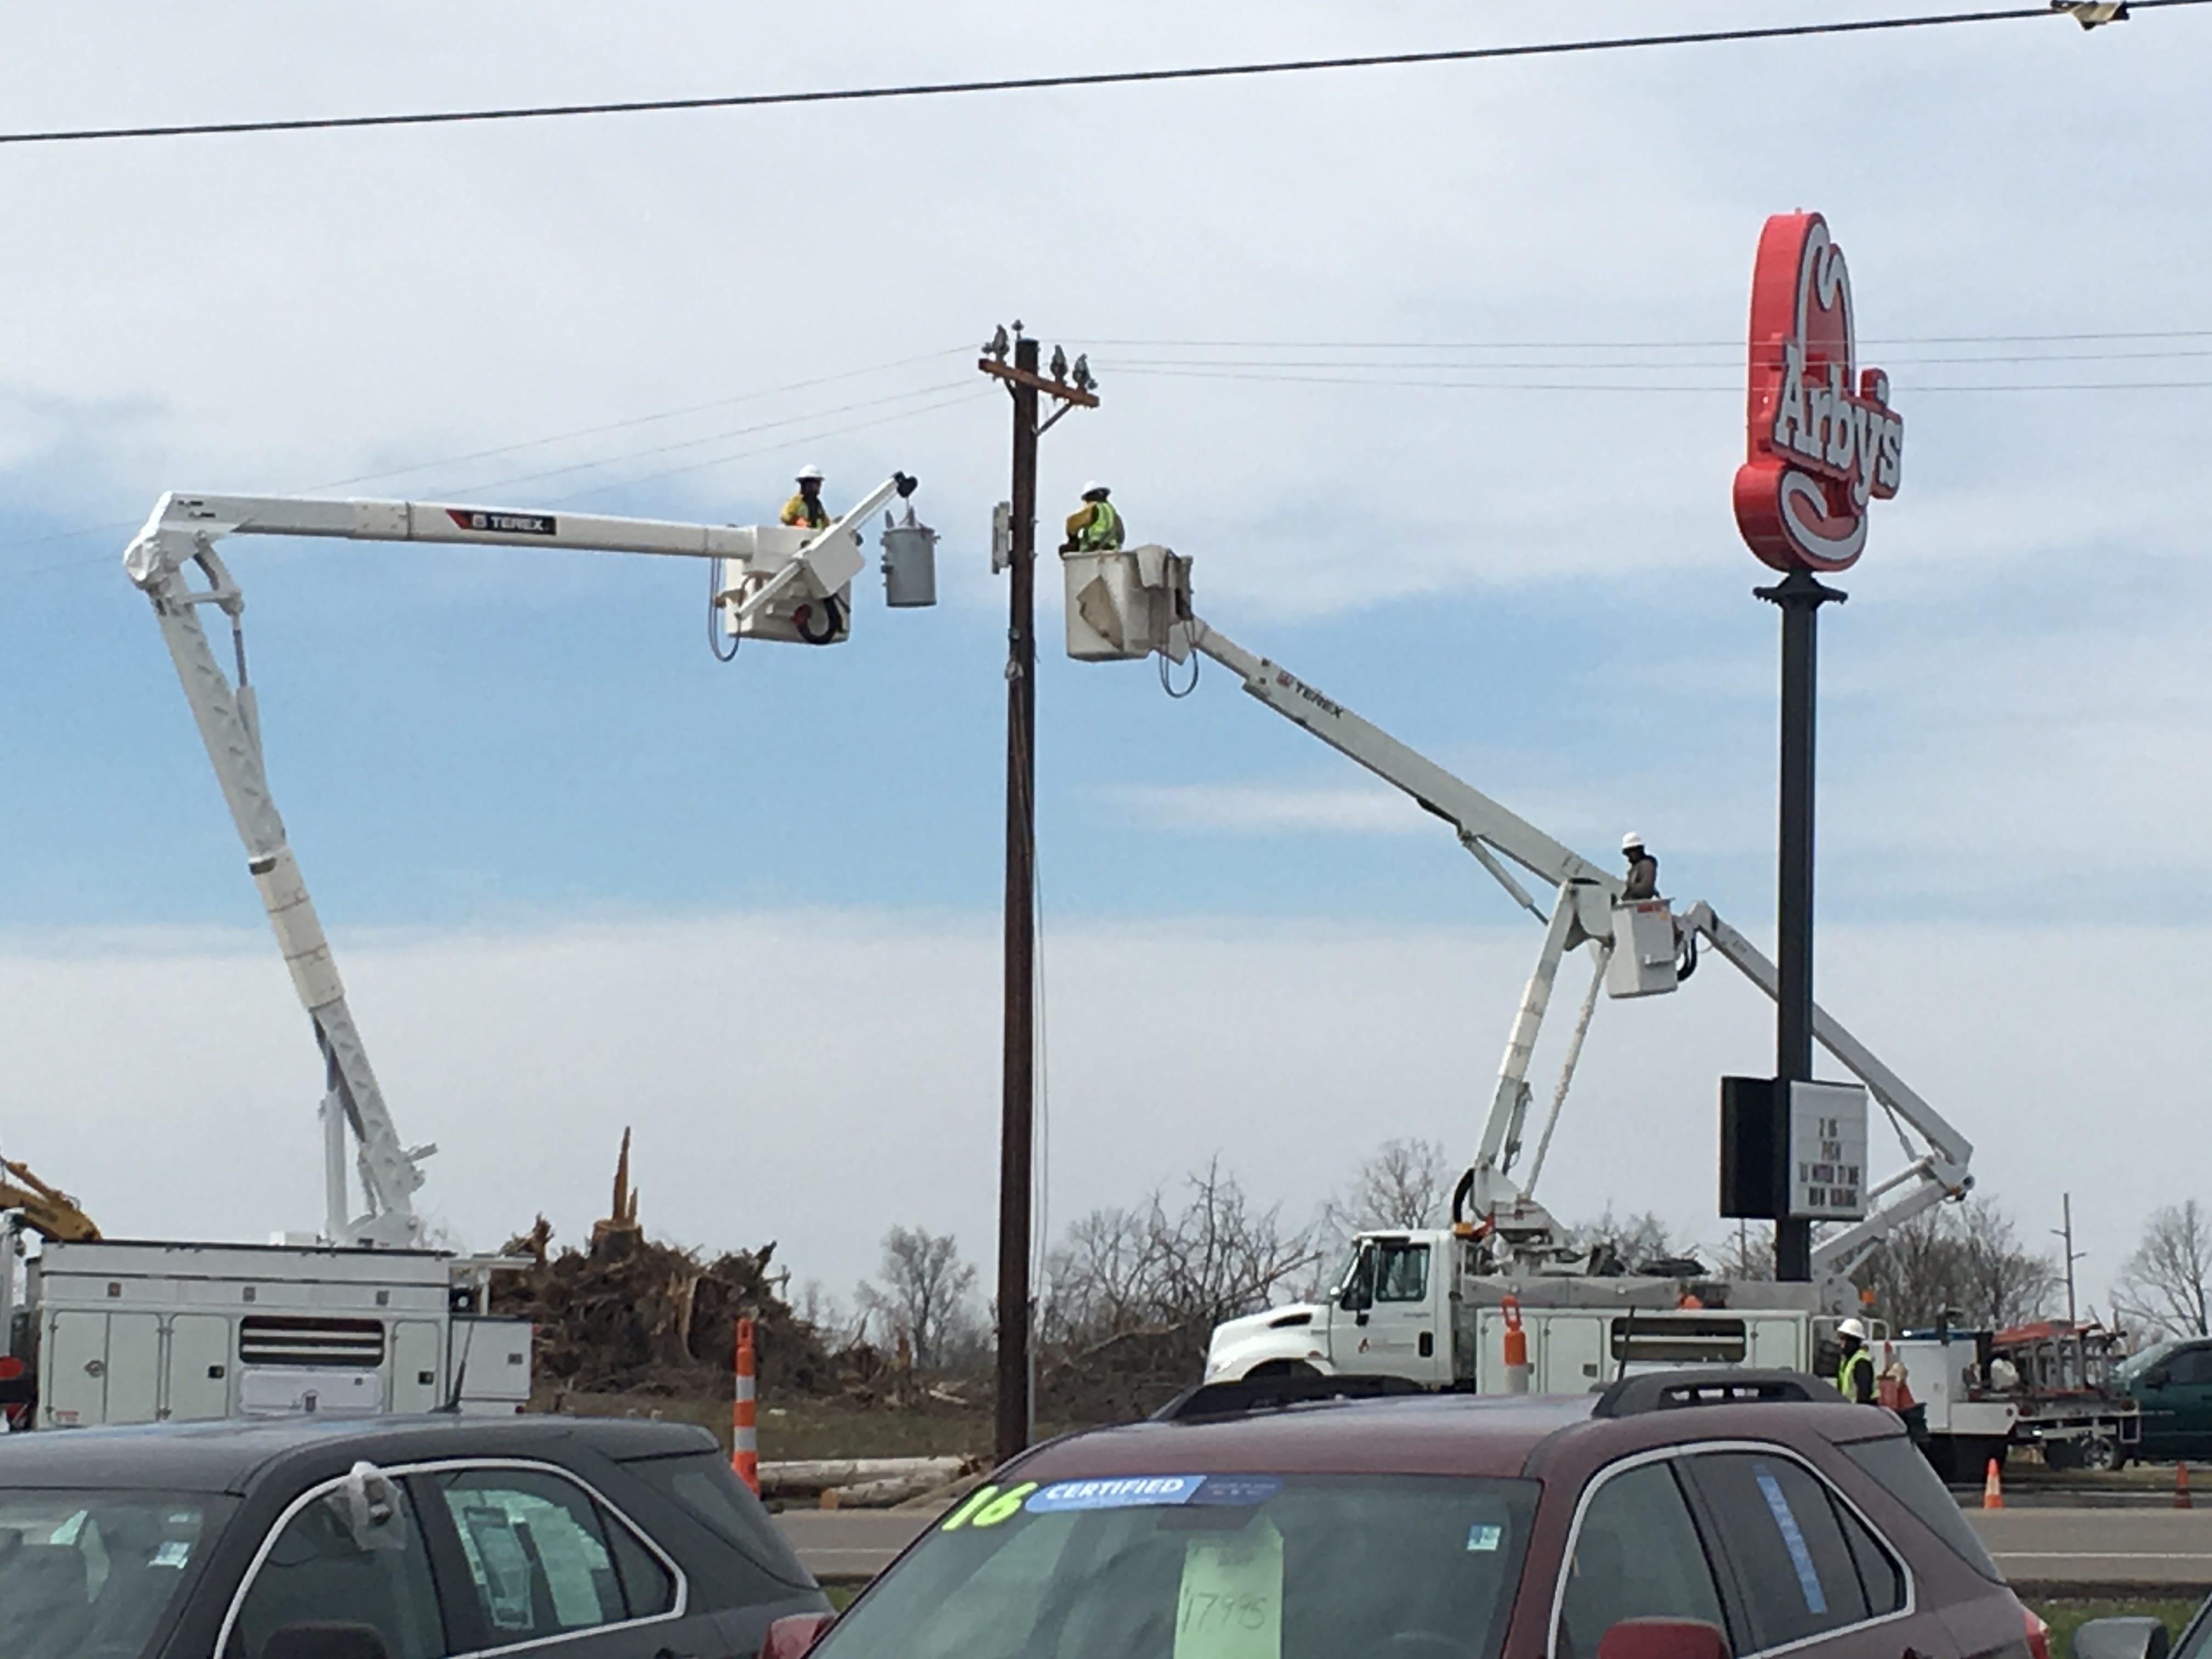 Crews were busy Tuesday repairing utility lines damaged by Sunday's twister.